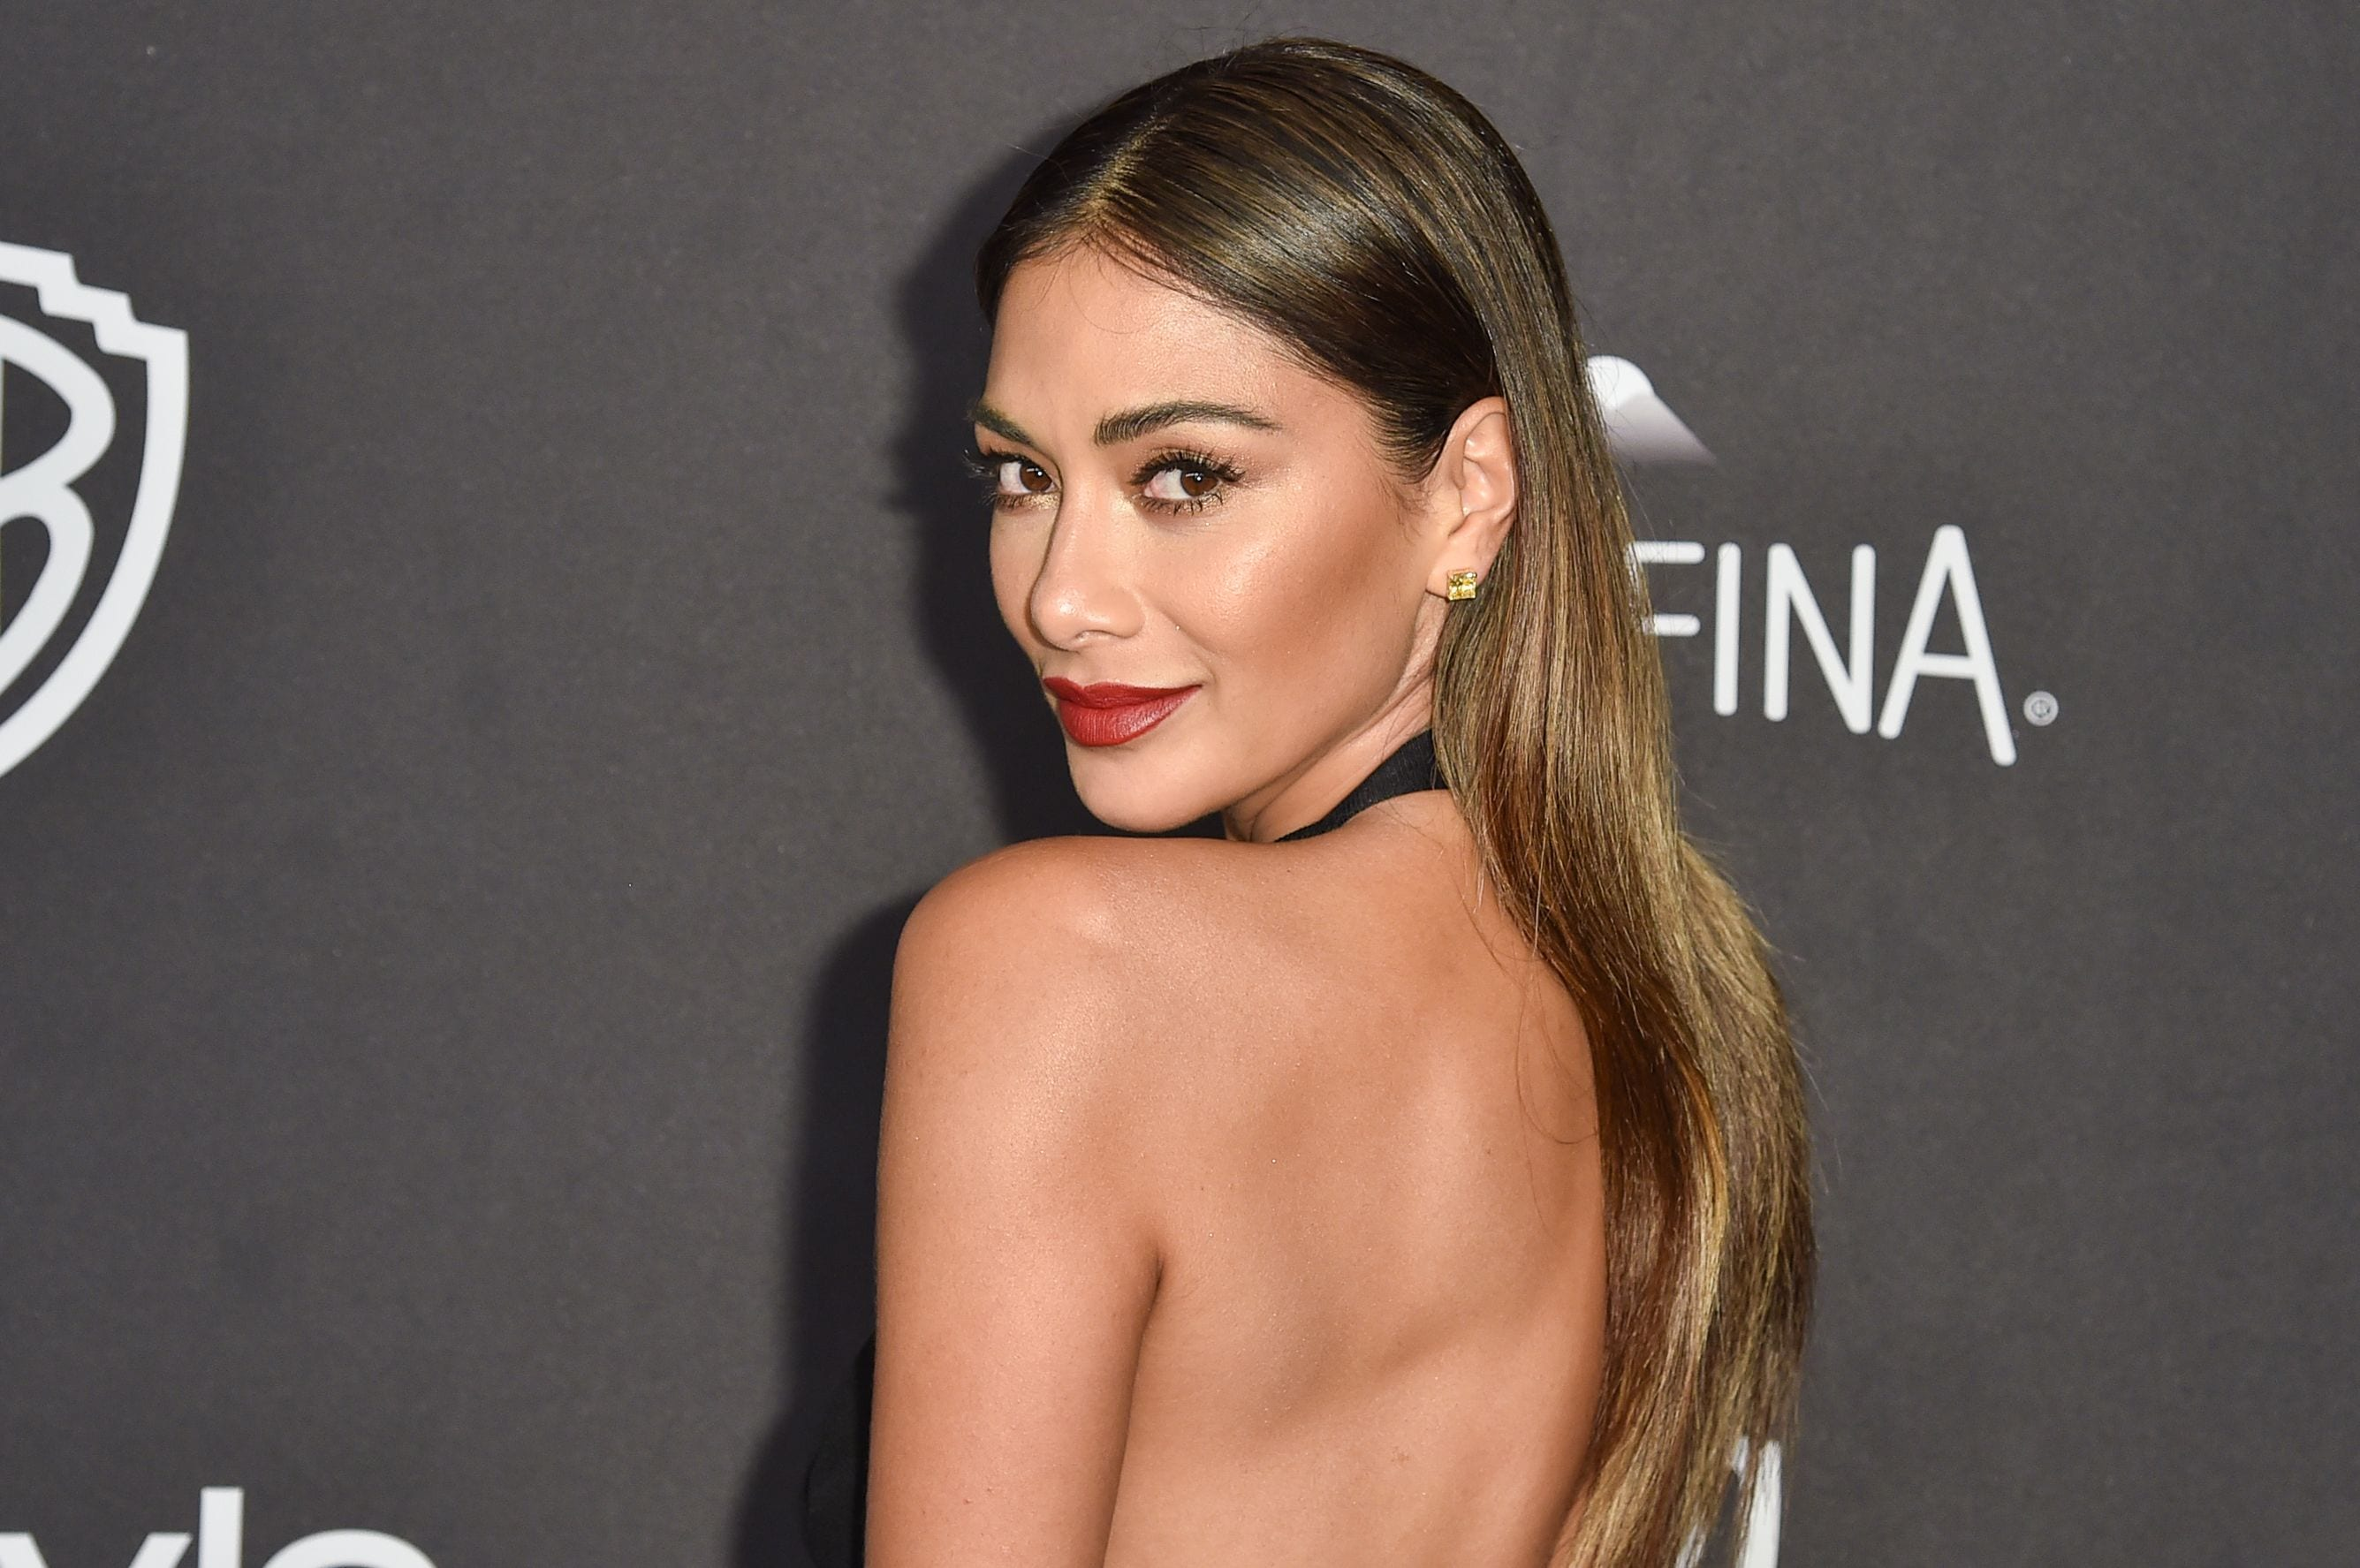 2017 hairstyles: All Things Hair - IMAGE - Nicole Scherzinger long straight brown hair